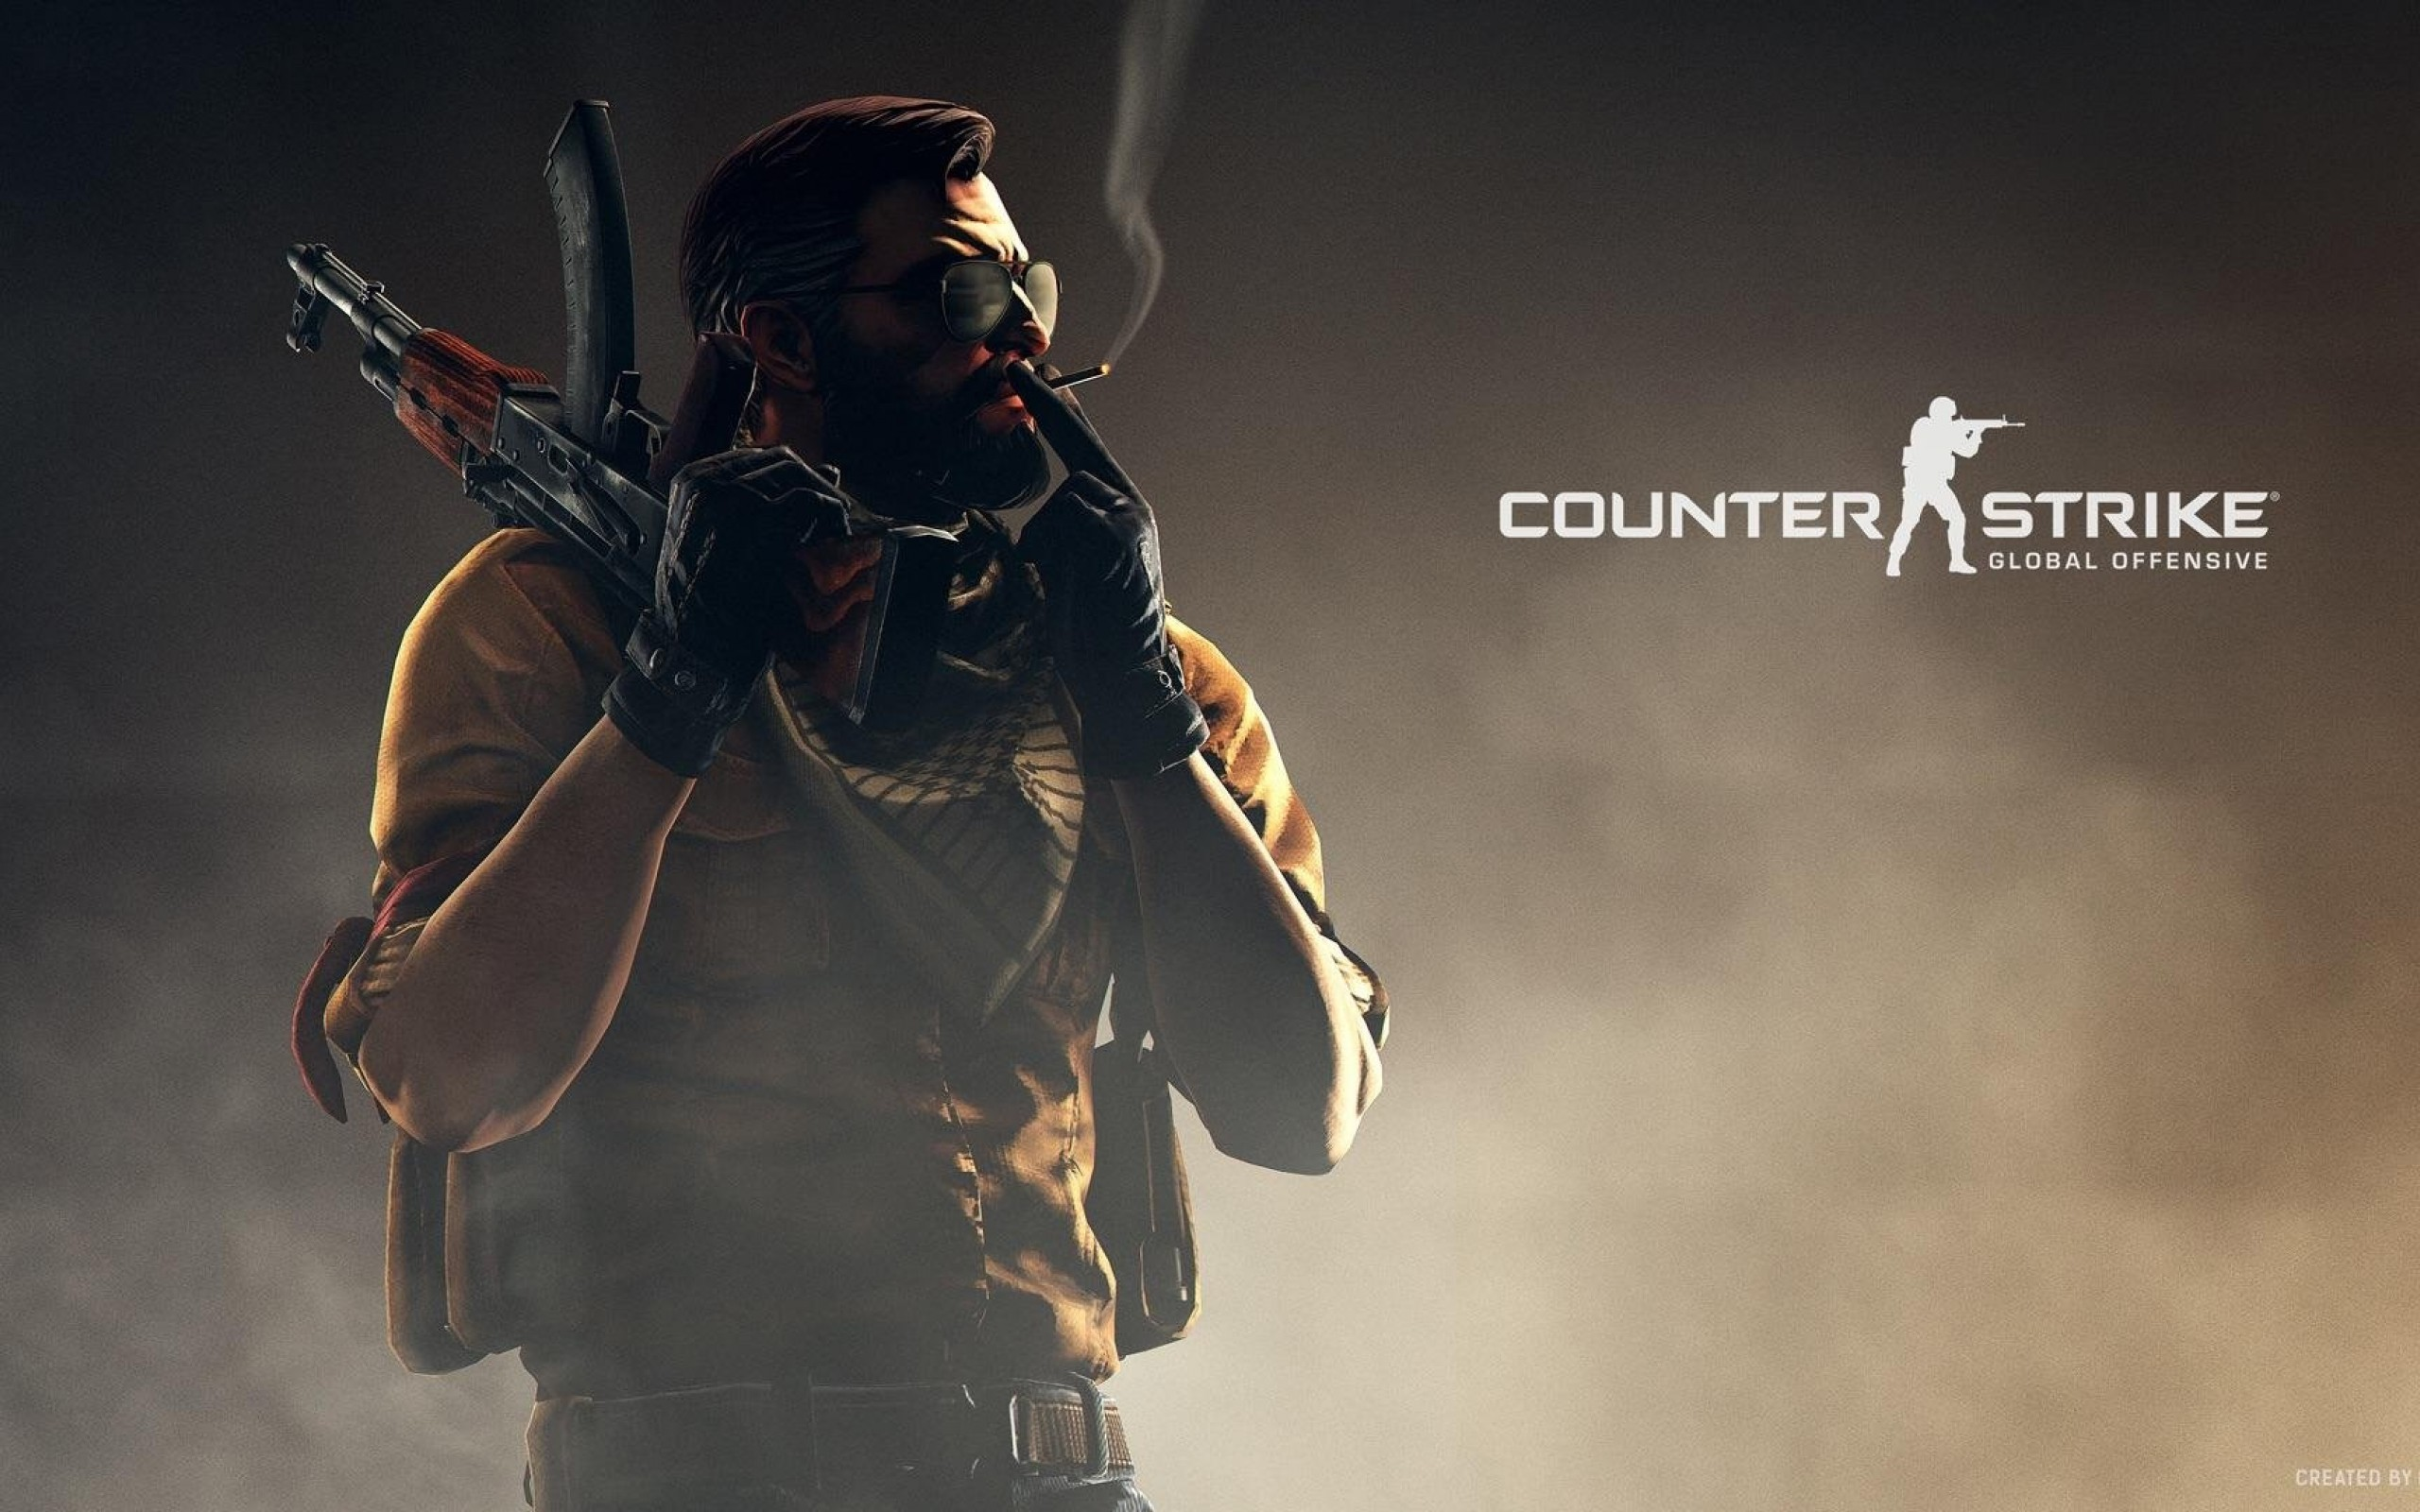 Press The Download Button To Save, Or - Counter Strike Global Offensive R , HD Wallpaper & Backgrounds